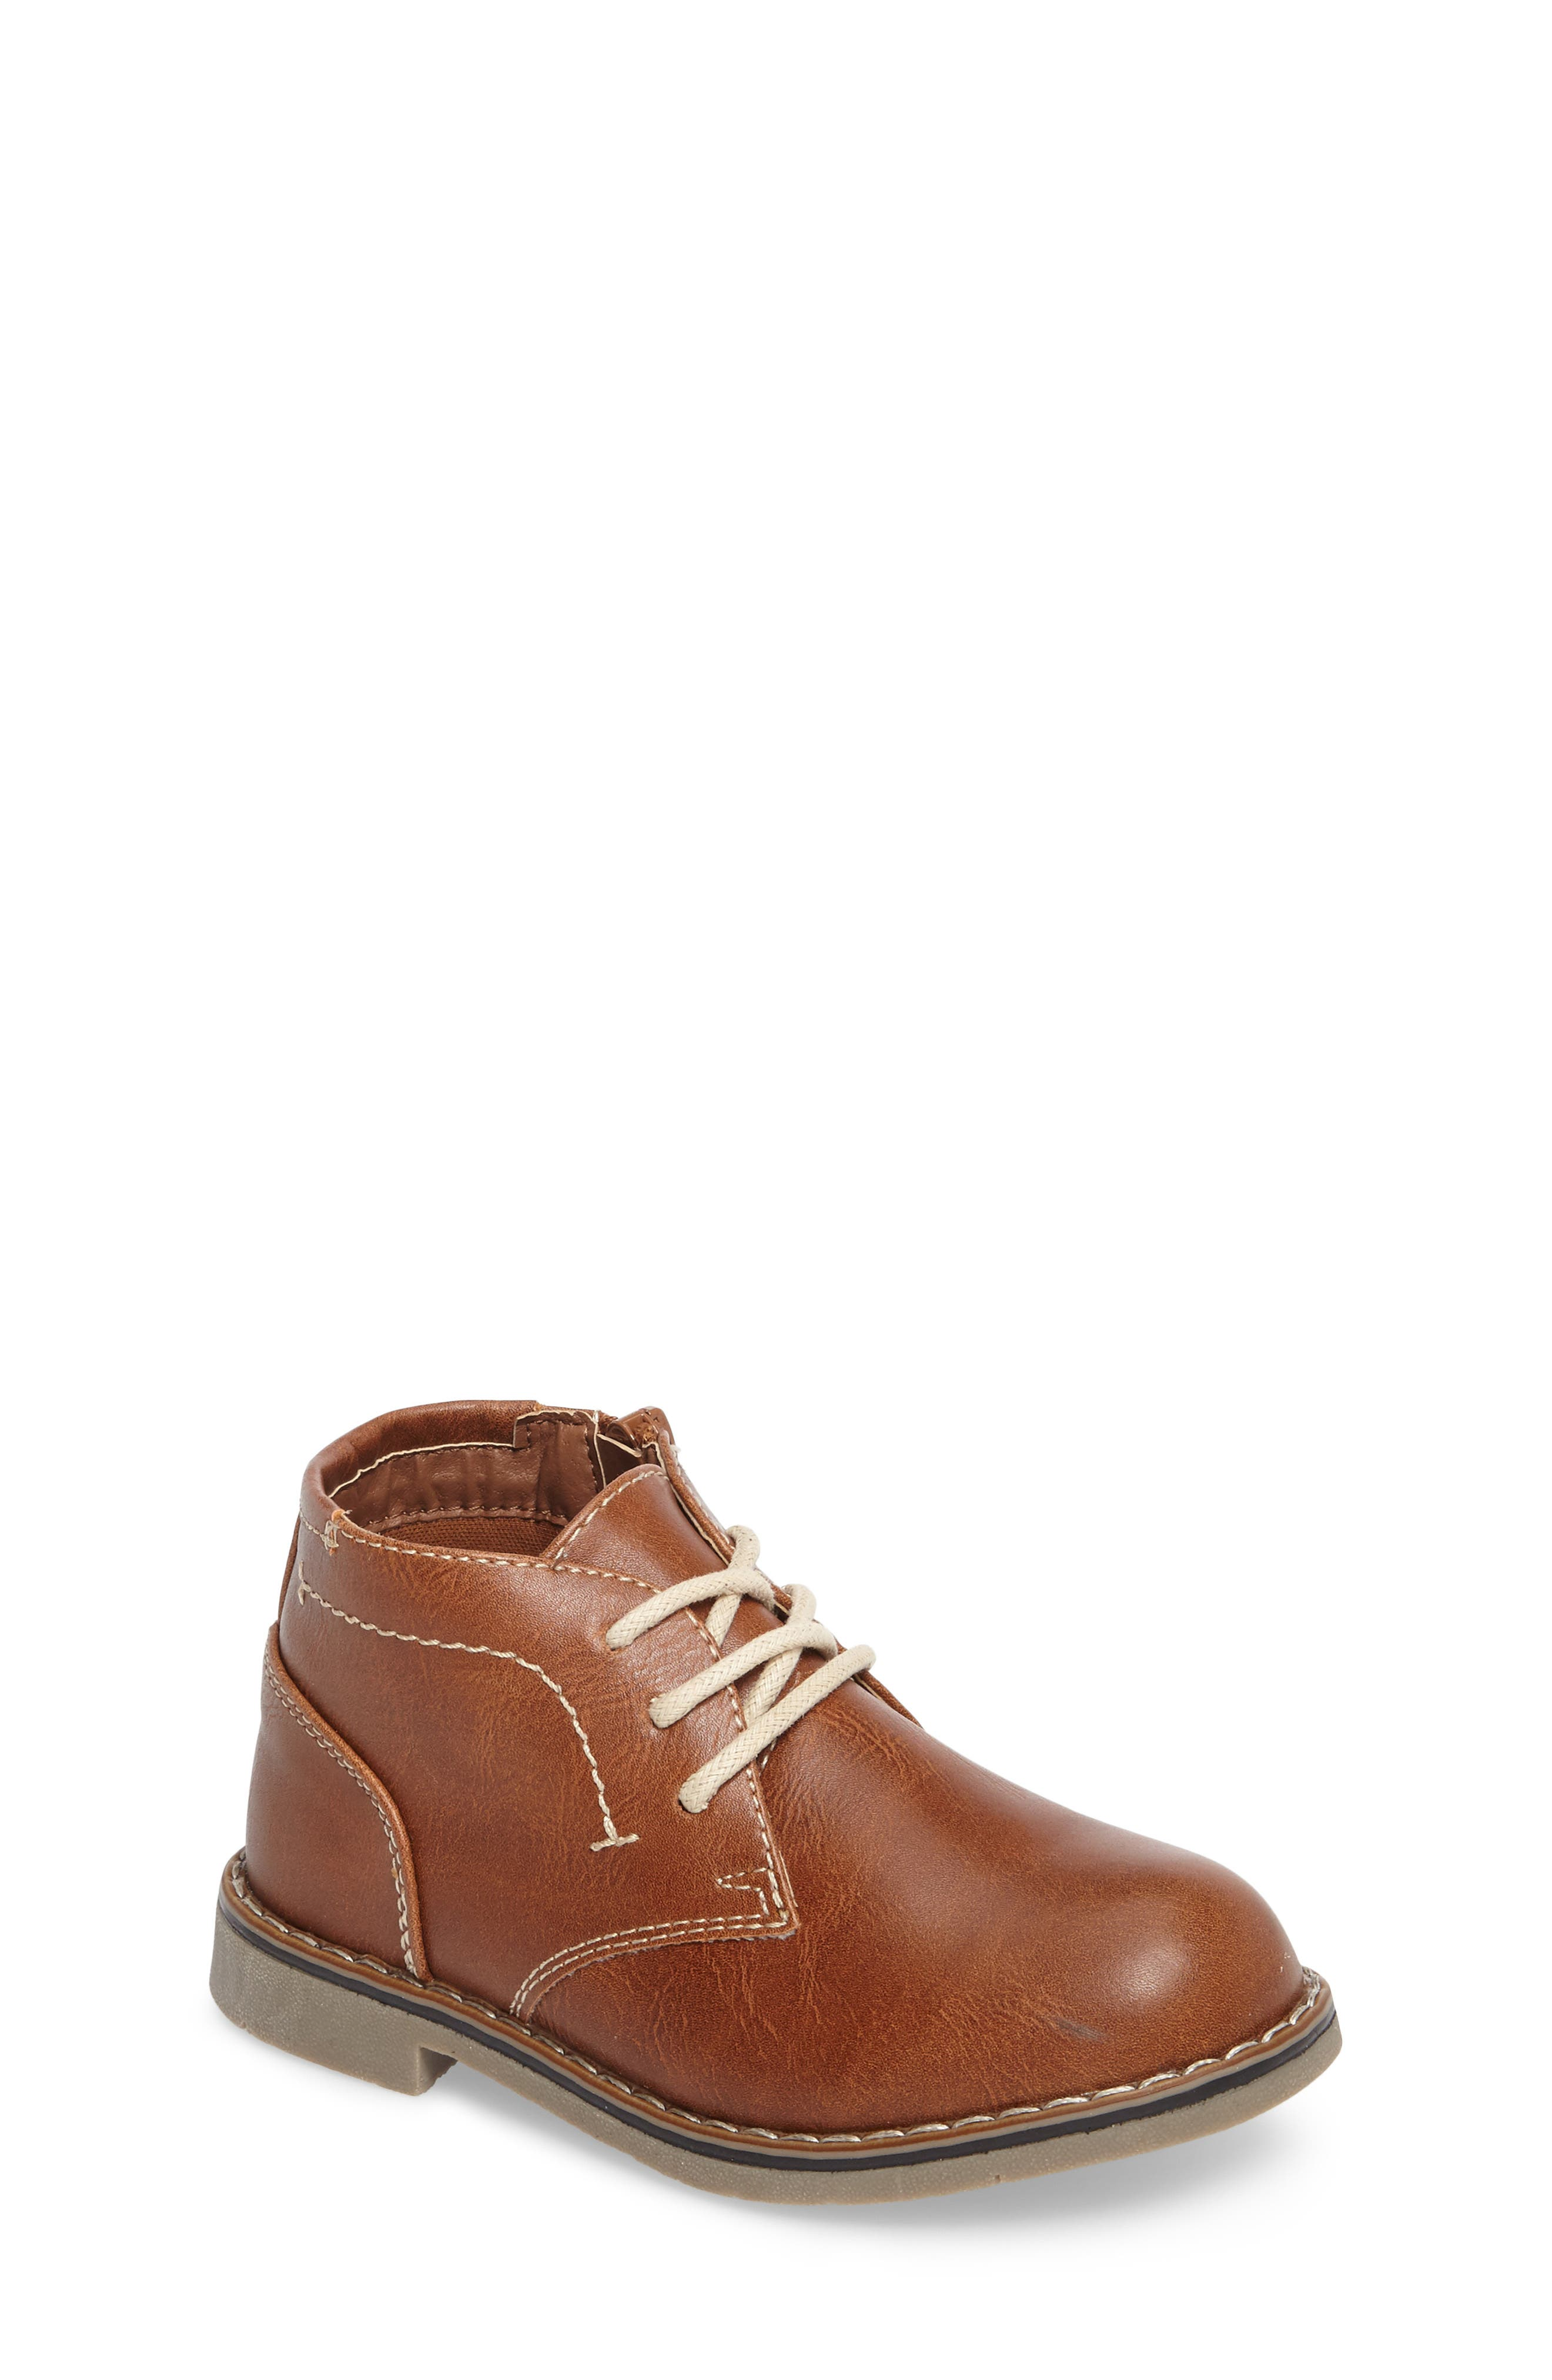 Chukka Boot,                         Main,                         color, Cognac